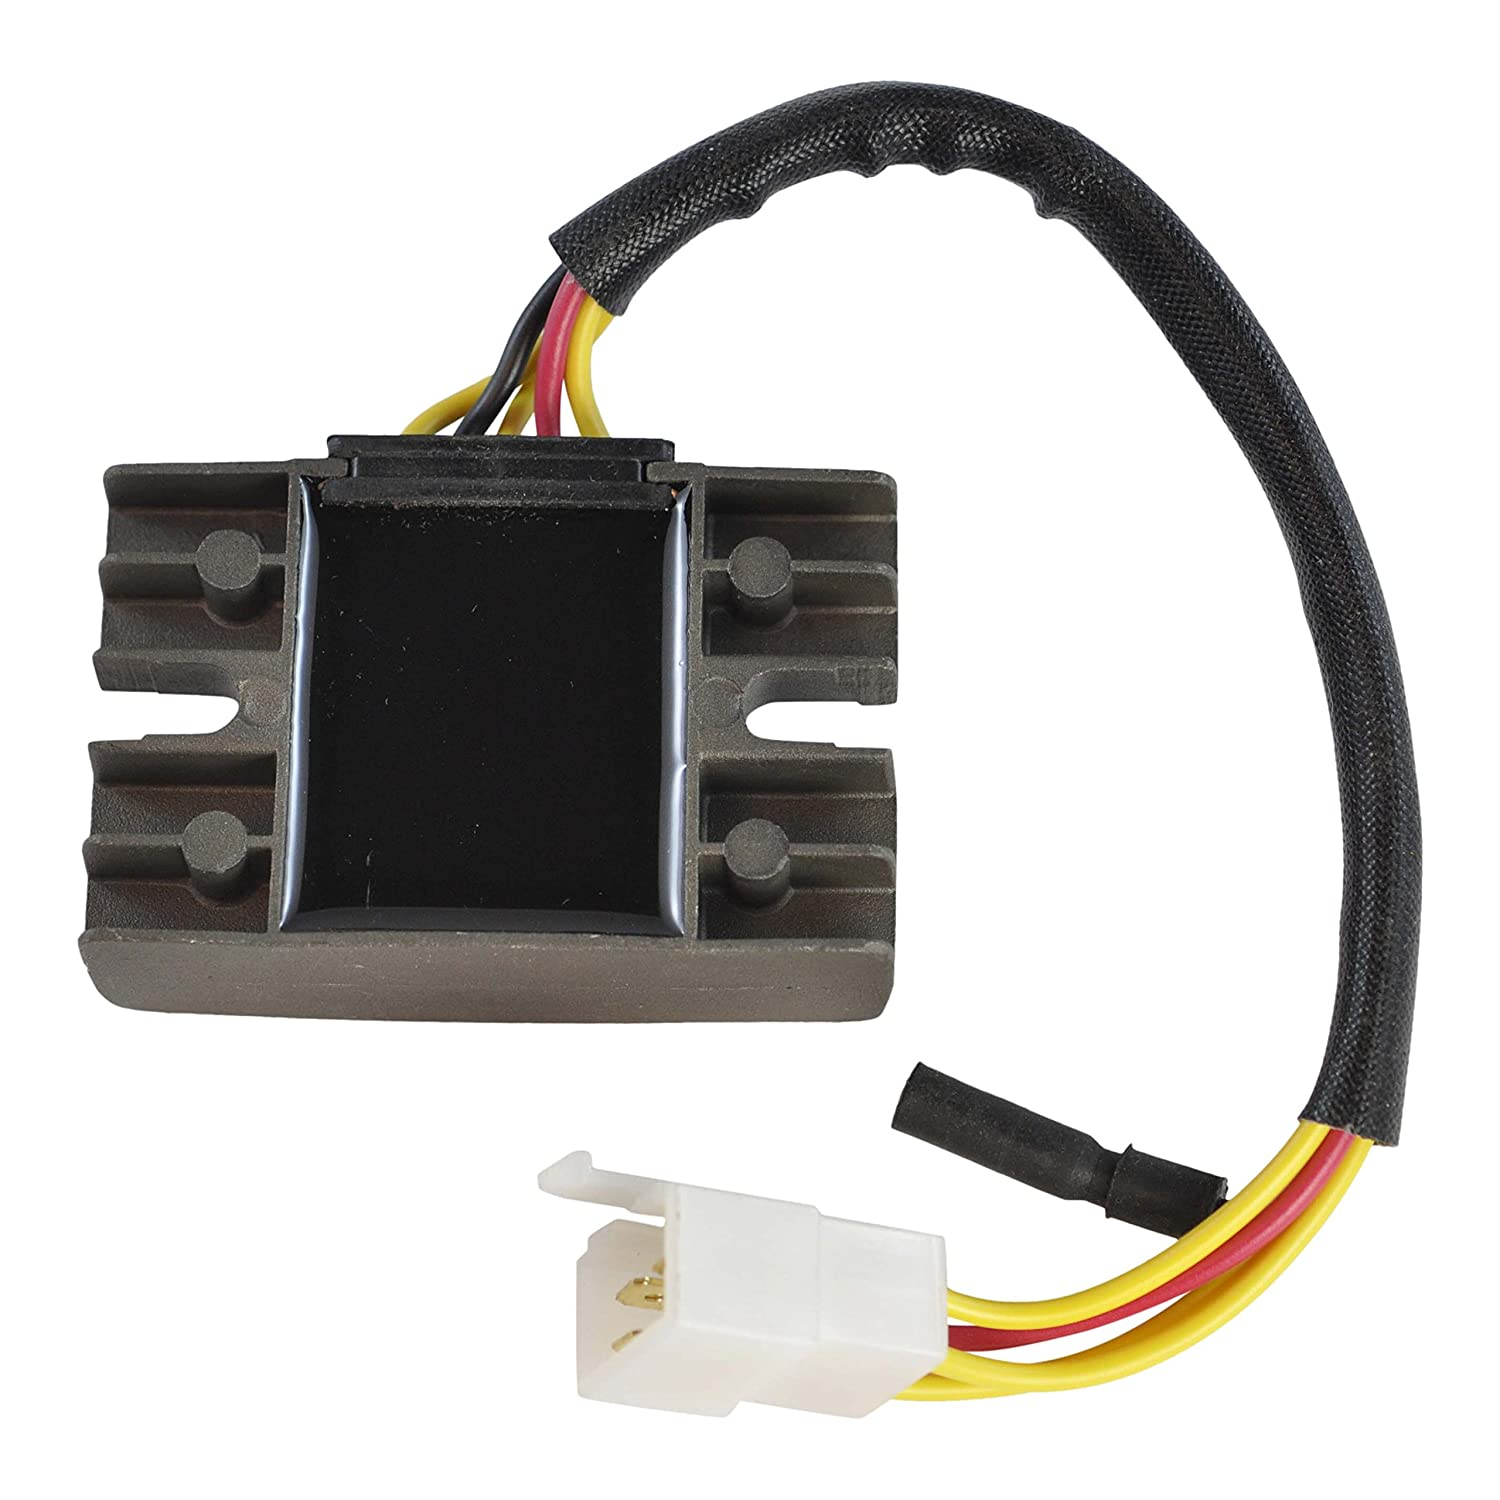 Voltage Regulator Rectifier For Suzuki LT 230 Quadrunner GR 650 GS 1100//850 750//650 550//450 1981-1993